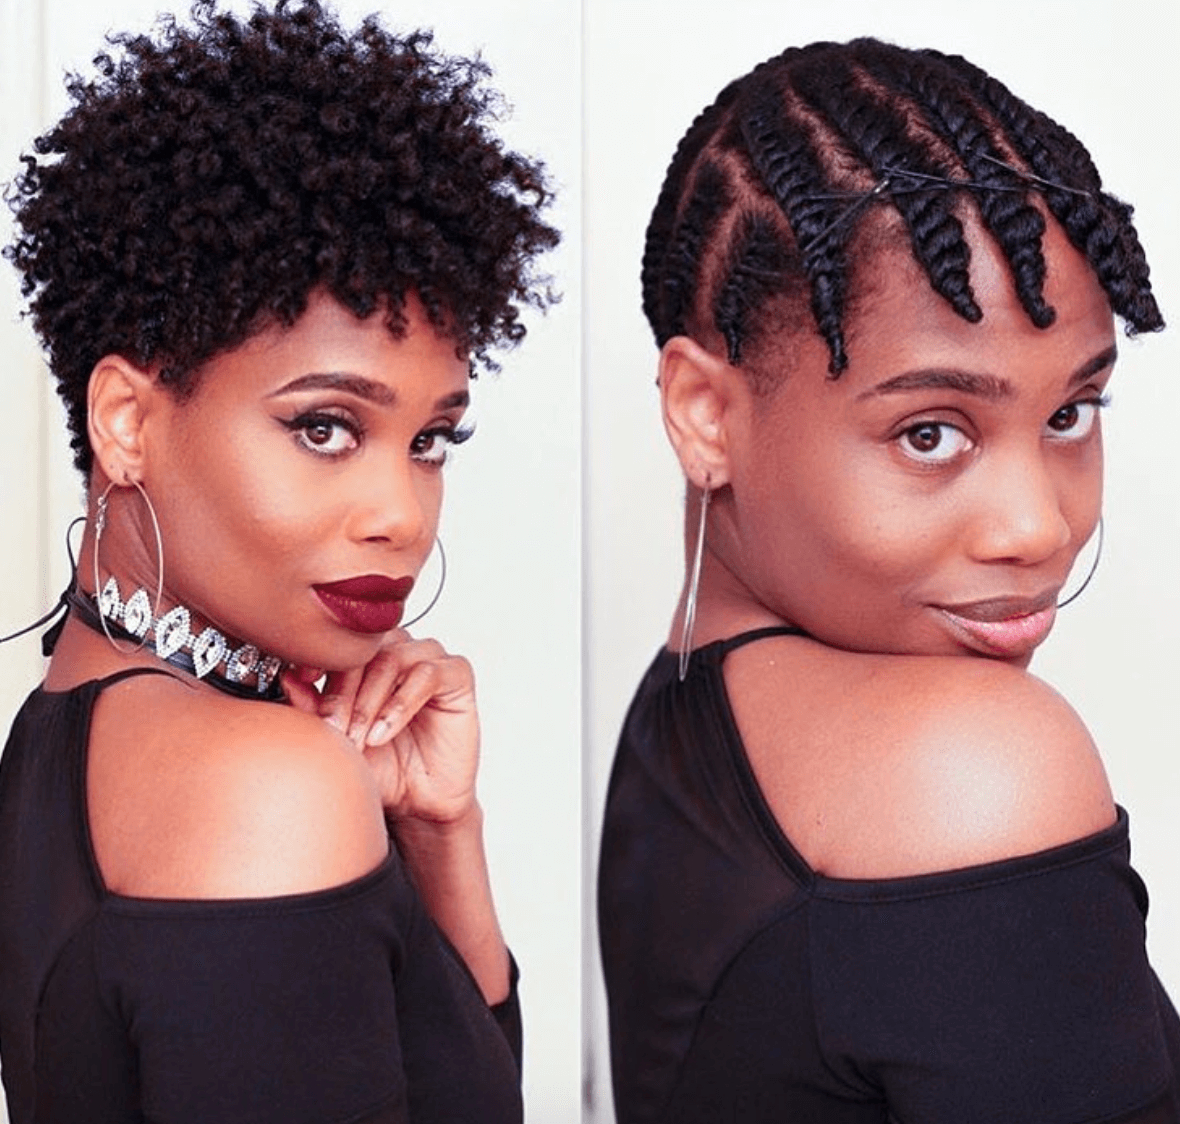 19 Stunning Quick Hairstyles For Short Natural African American Hair Regarding Short Hairstyles For Afro Hair (View 6 of 25)